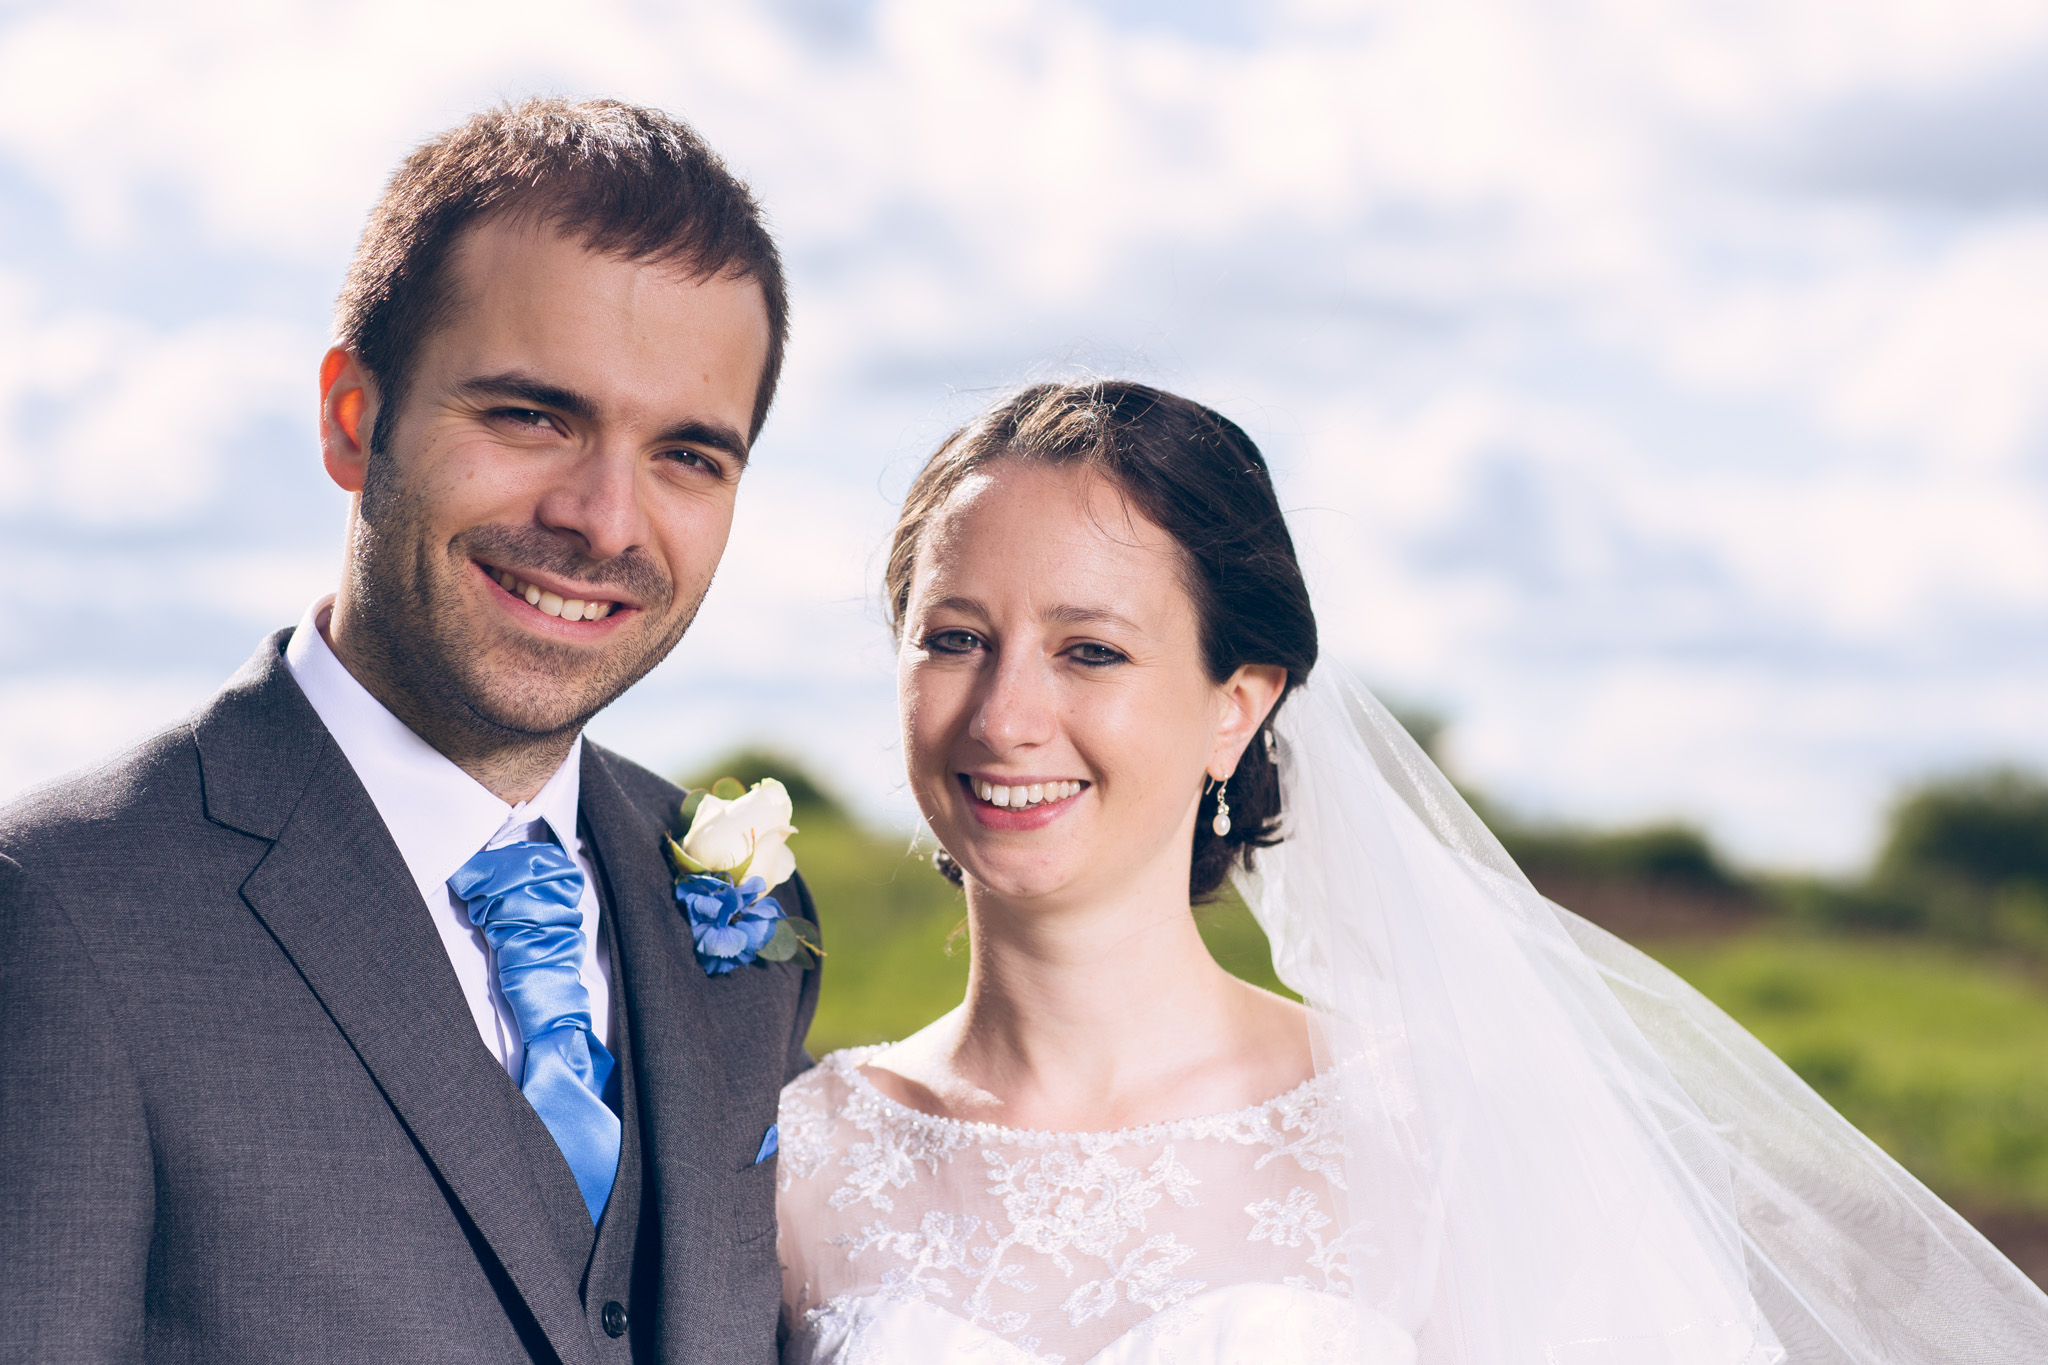 Mark_Barnes_Northern_Ireland_Wedding_Photography_Jack_and_Claire-32.jpg